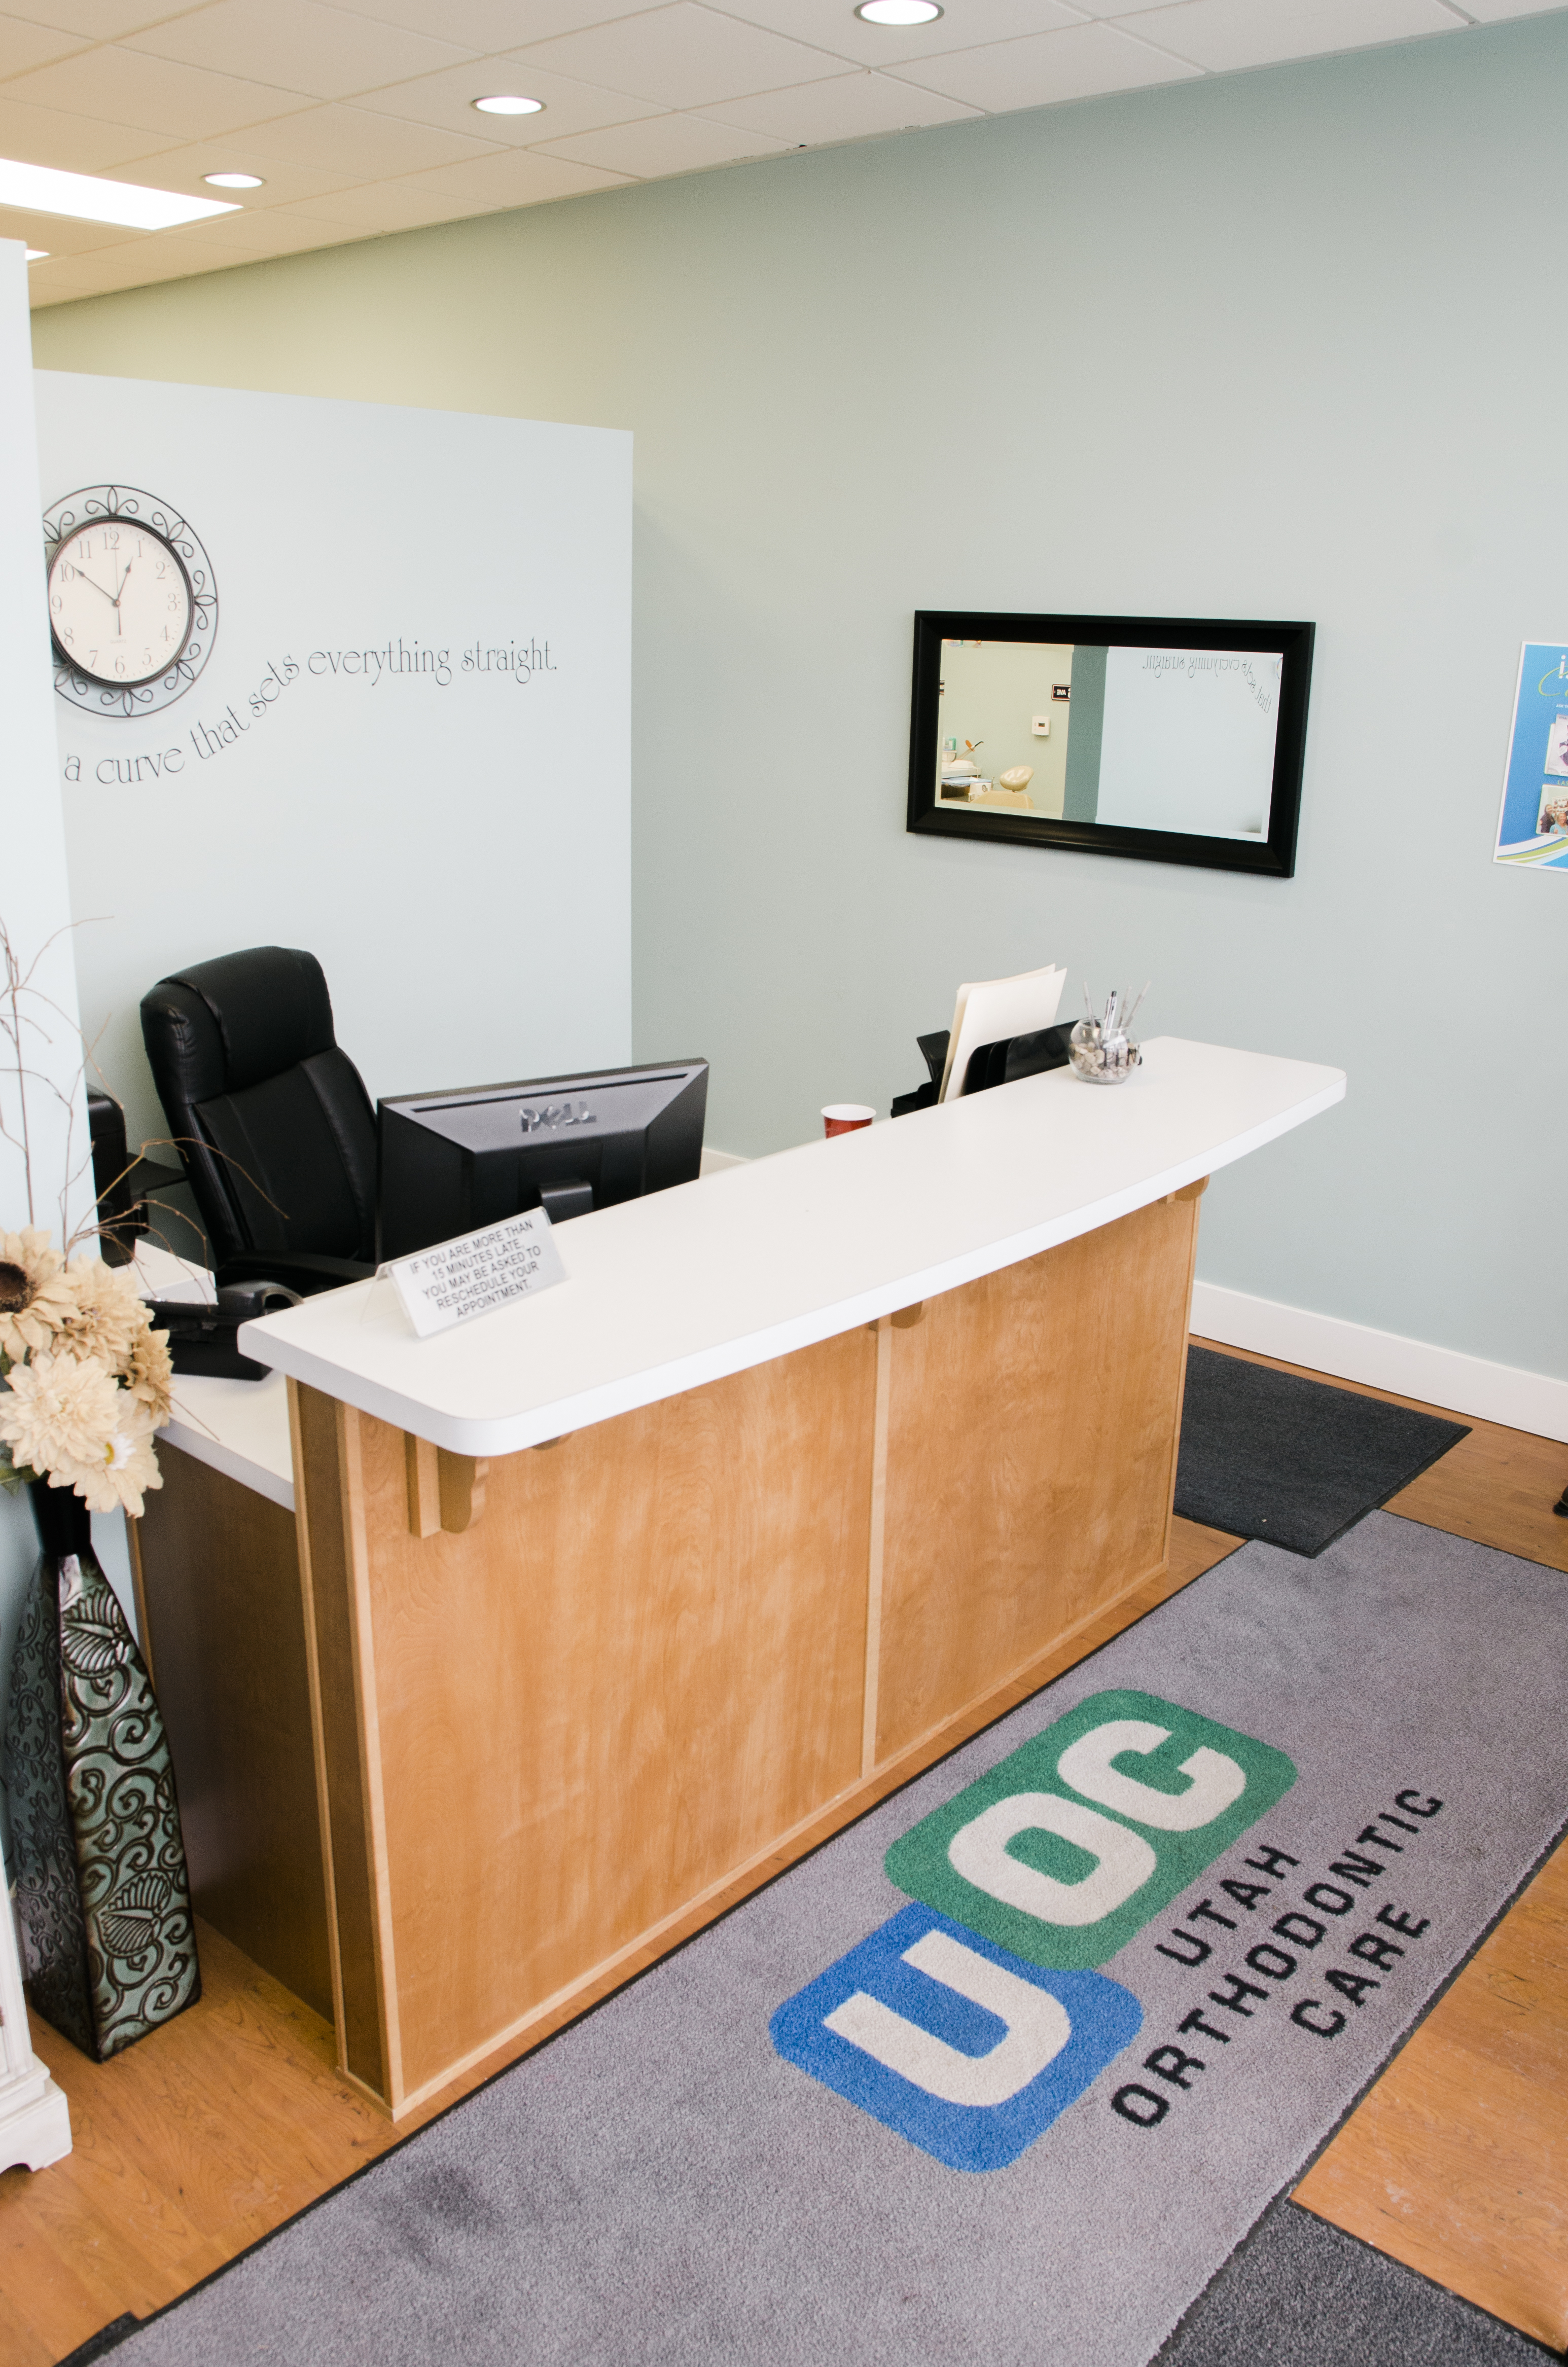 Visit West Valley City For Quality Orthodontic Treatment Today!